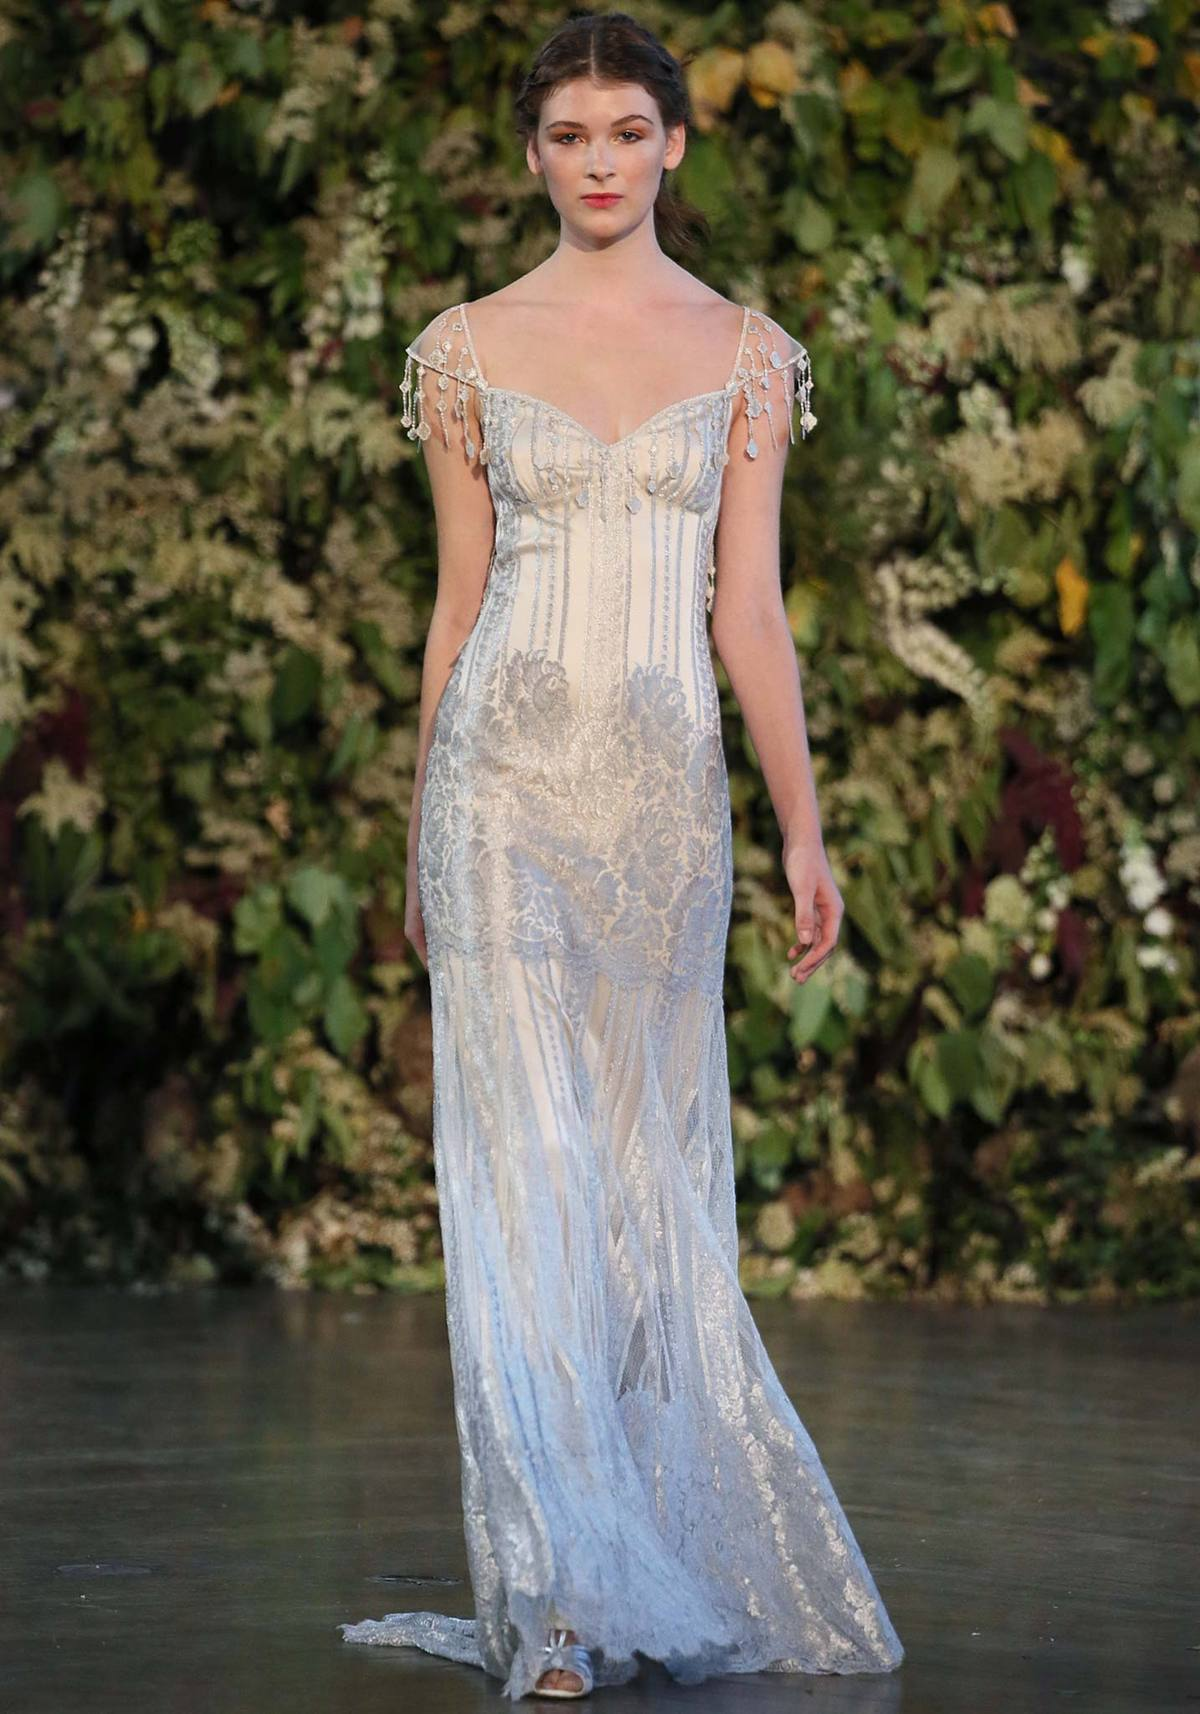 Florence French lace Claire pettibone gown